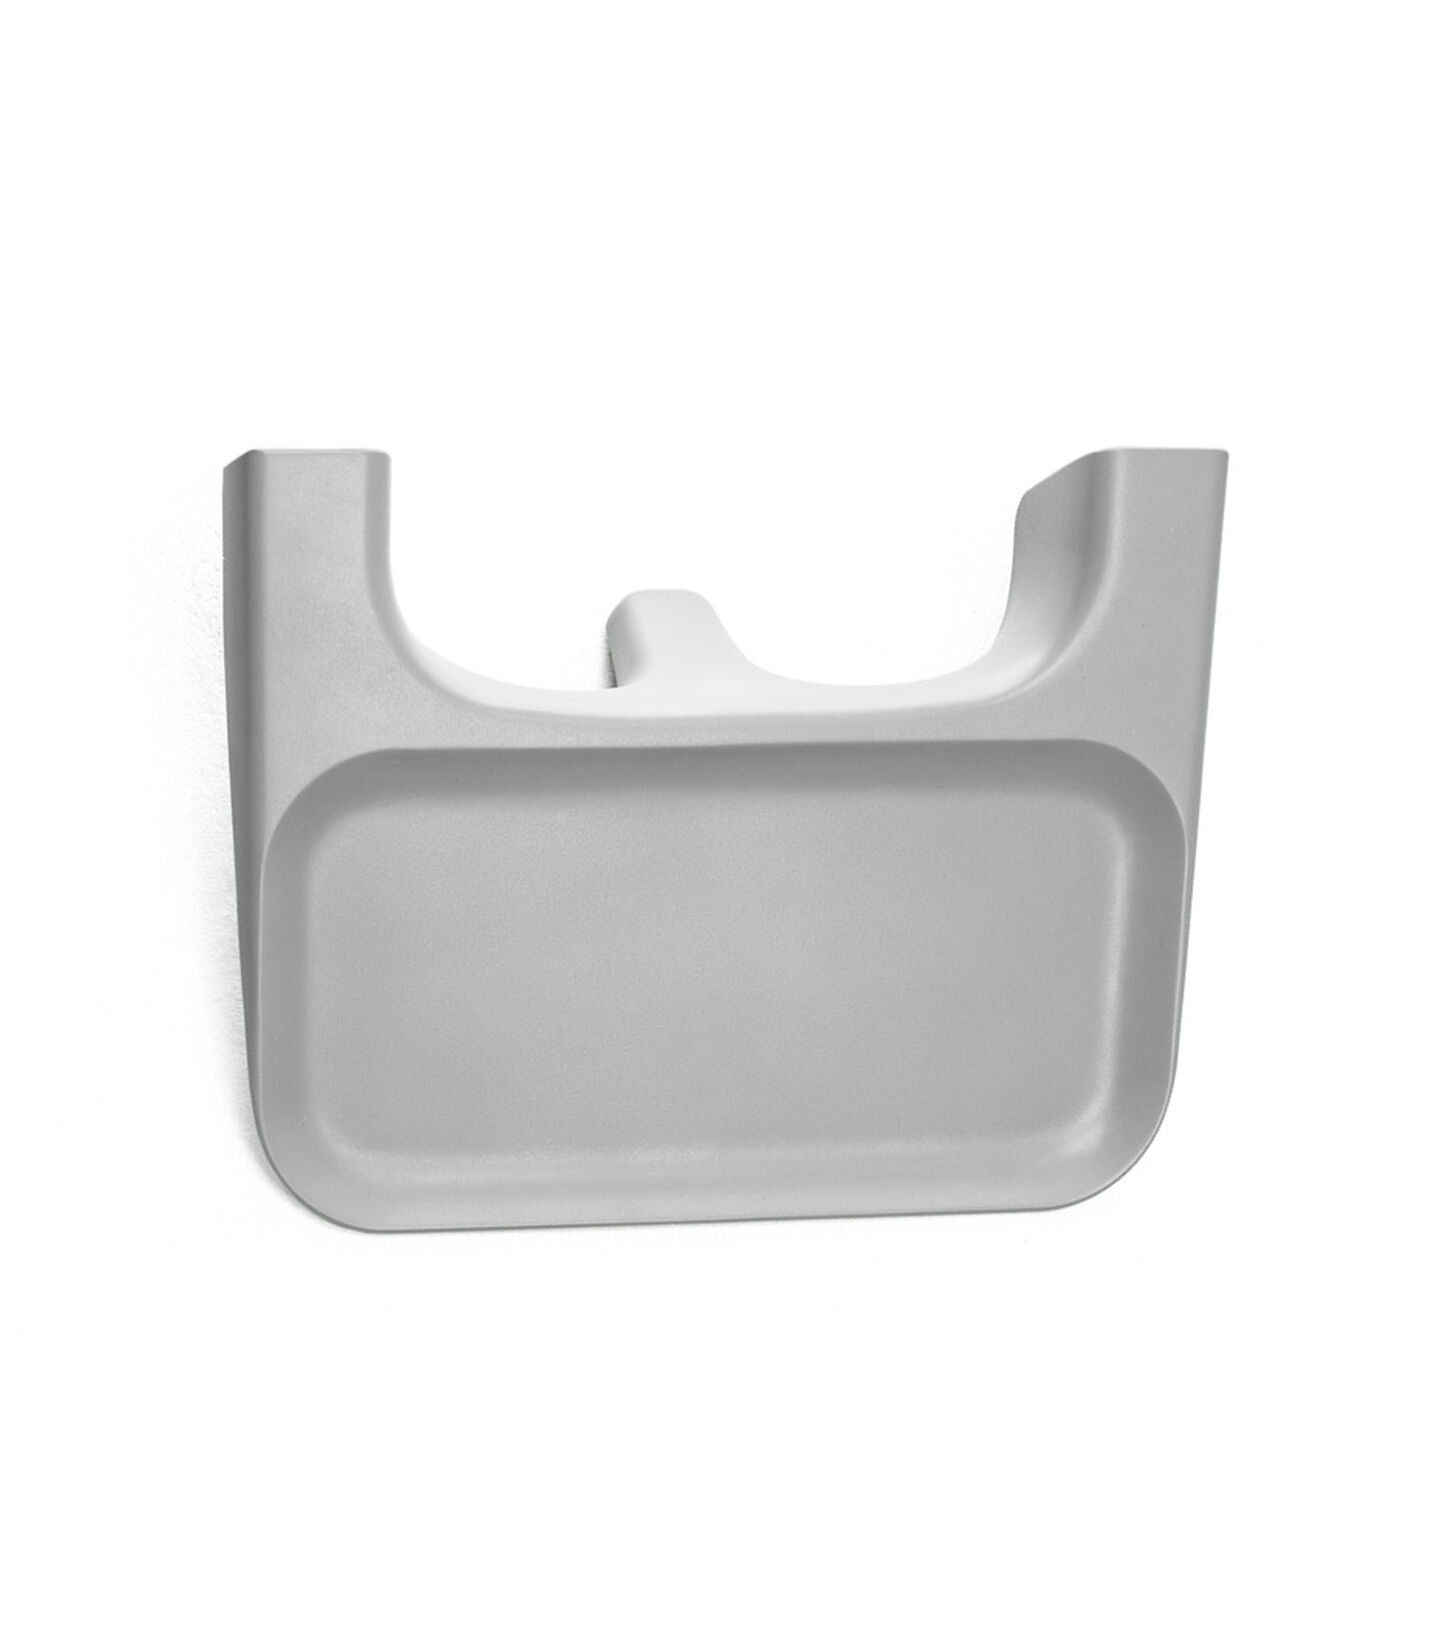 Stokke® Clikk™ Tray - Cloud Grey, Cloud Grey, mainview view 2